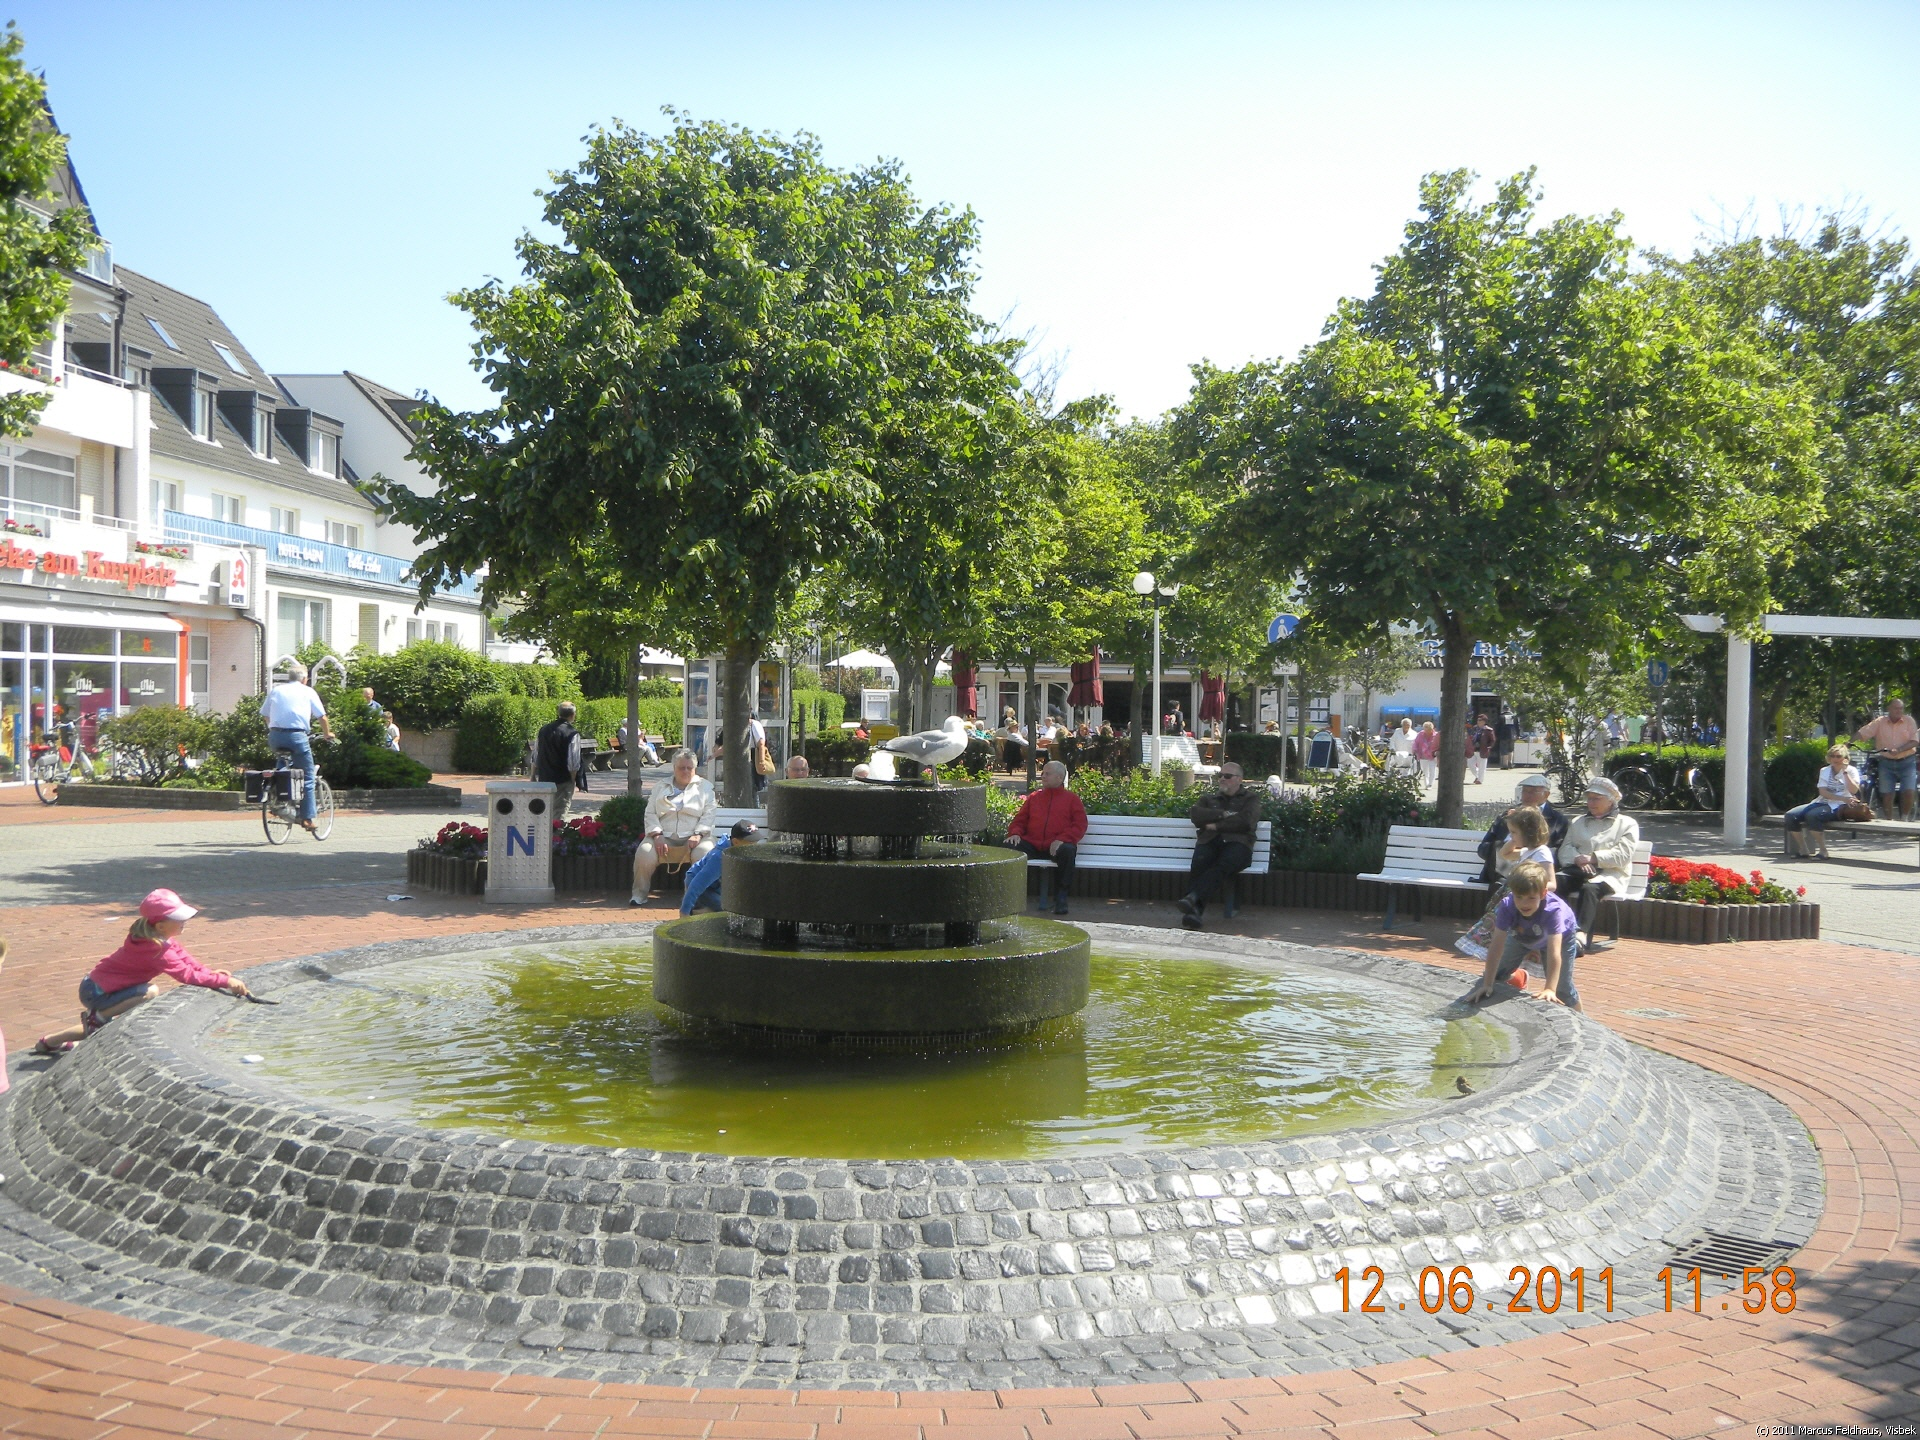 Nordquartier norderney